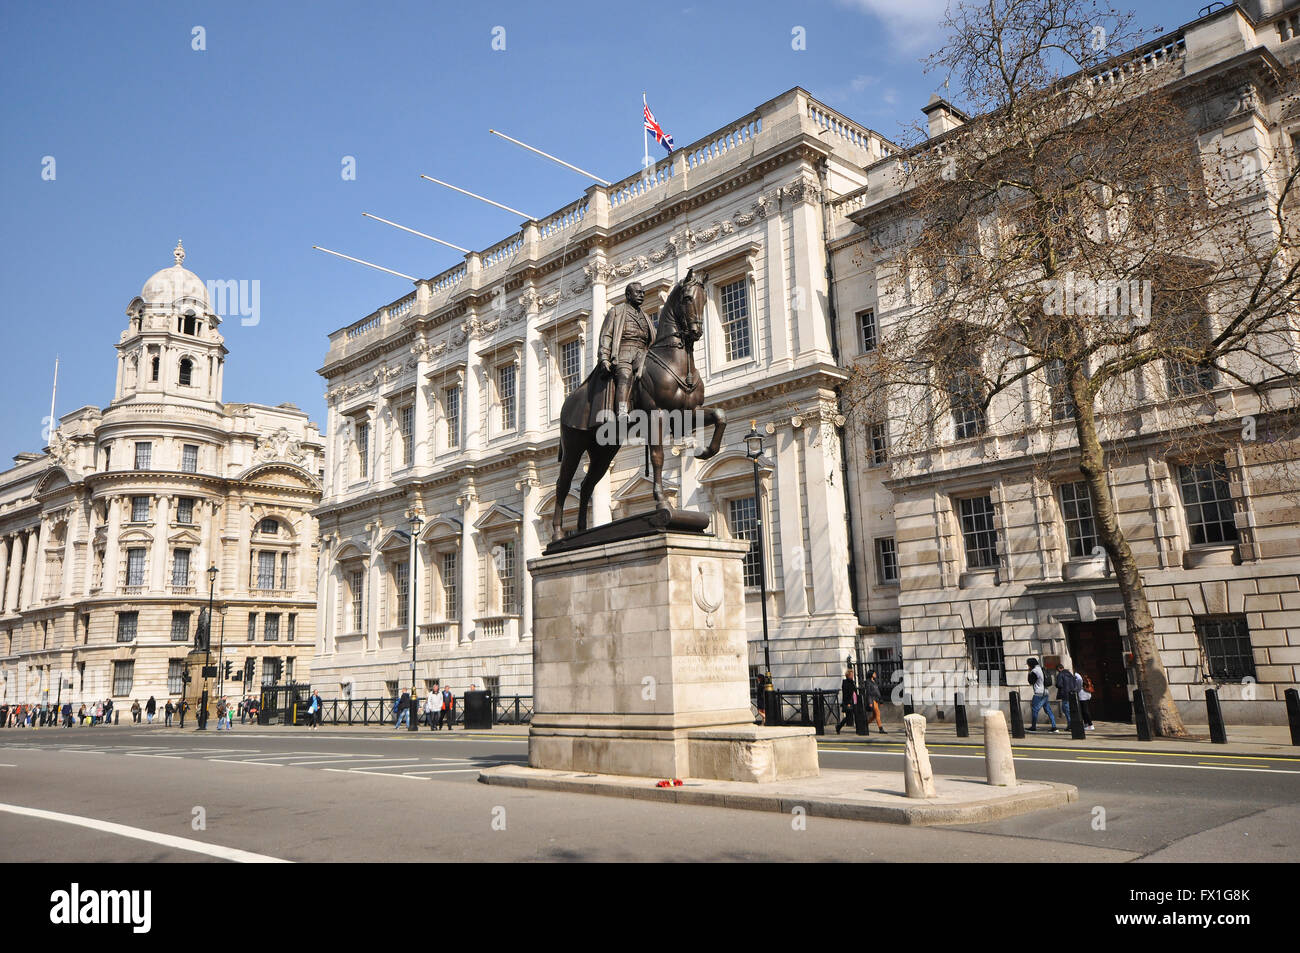 whitehall-london-war-office-to-the-left-banqueting-house-centre-rear-FX1G8K.jpg